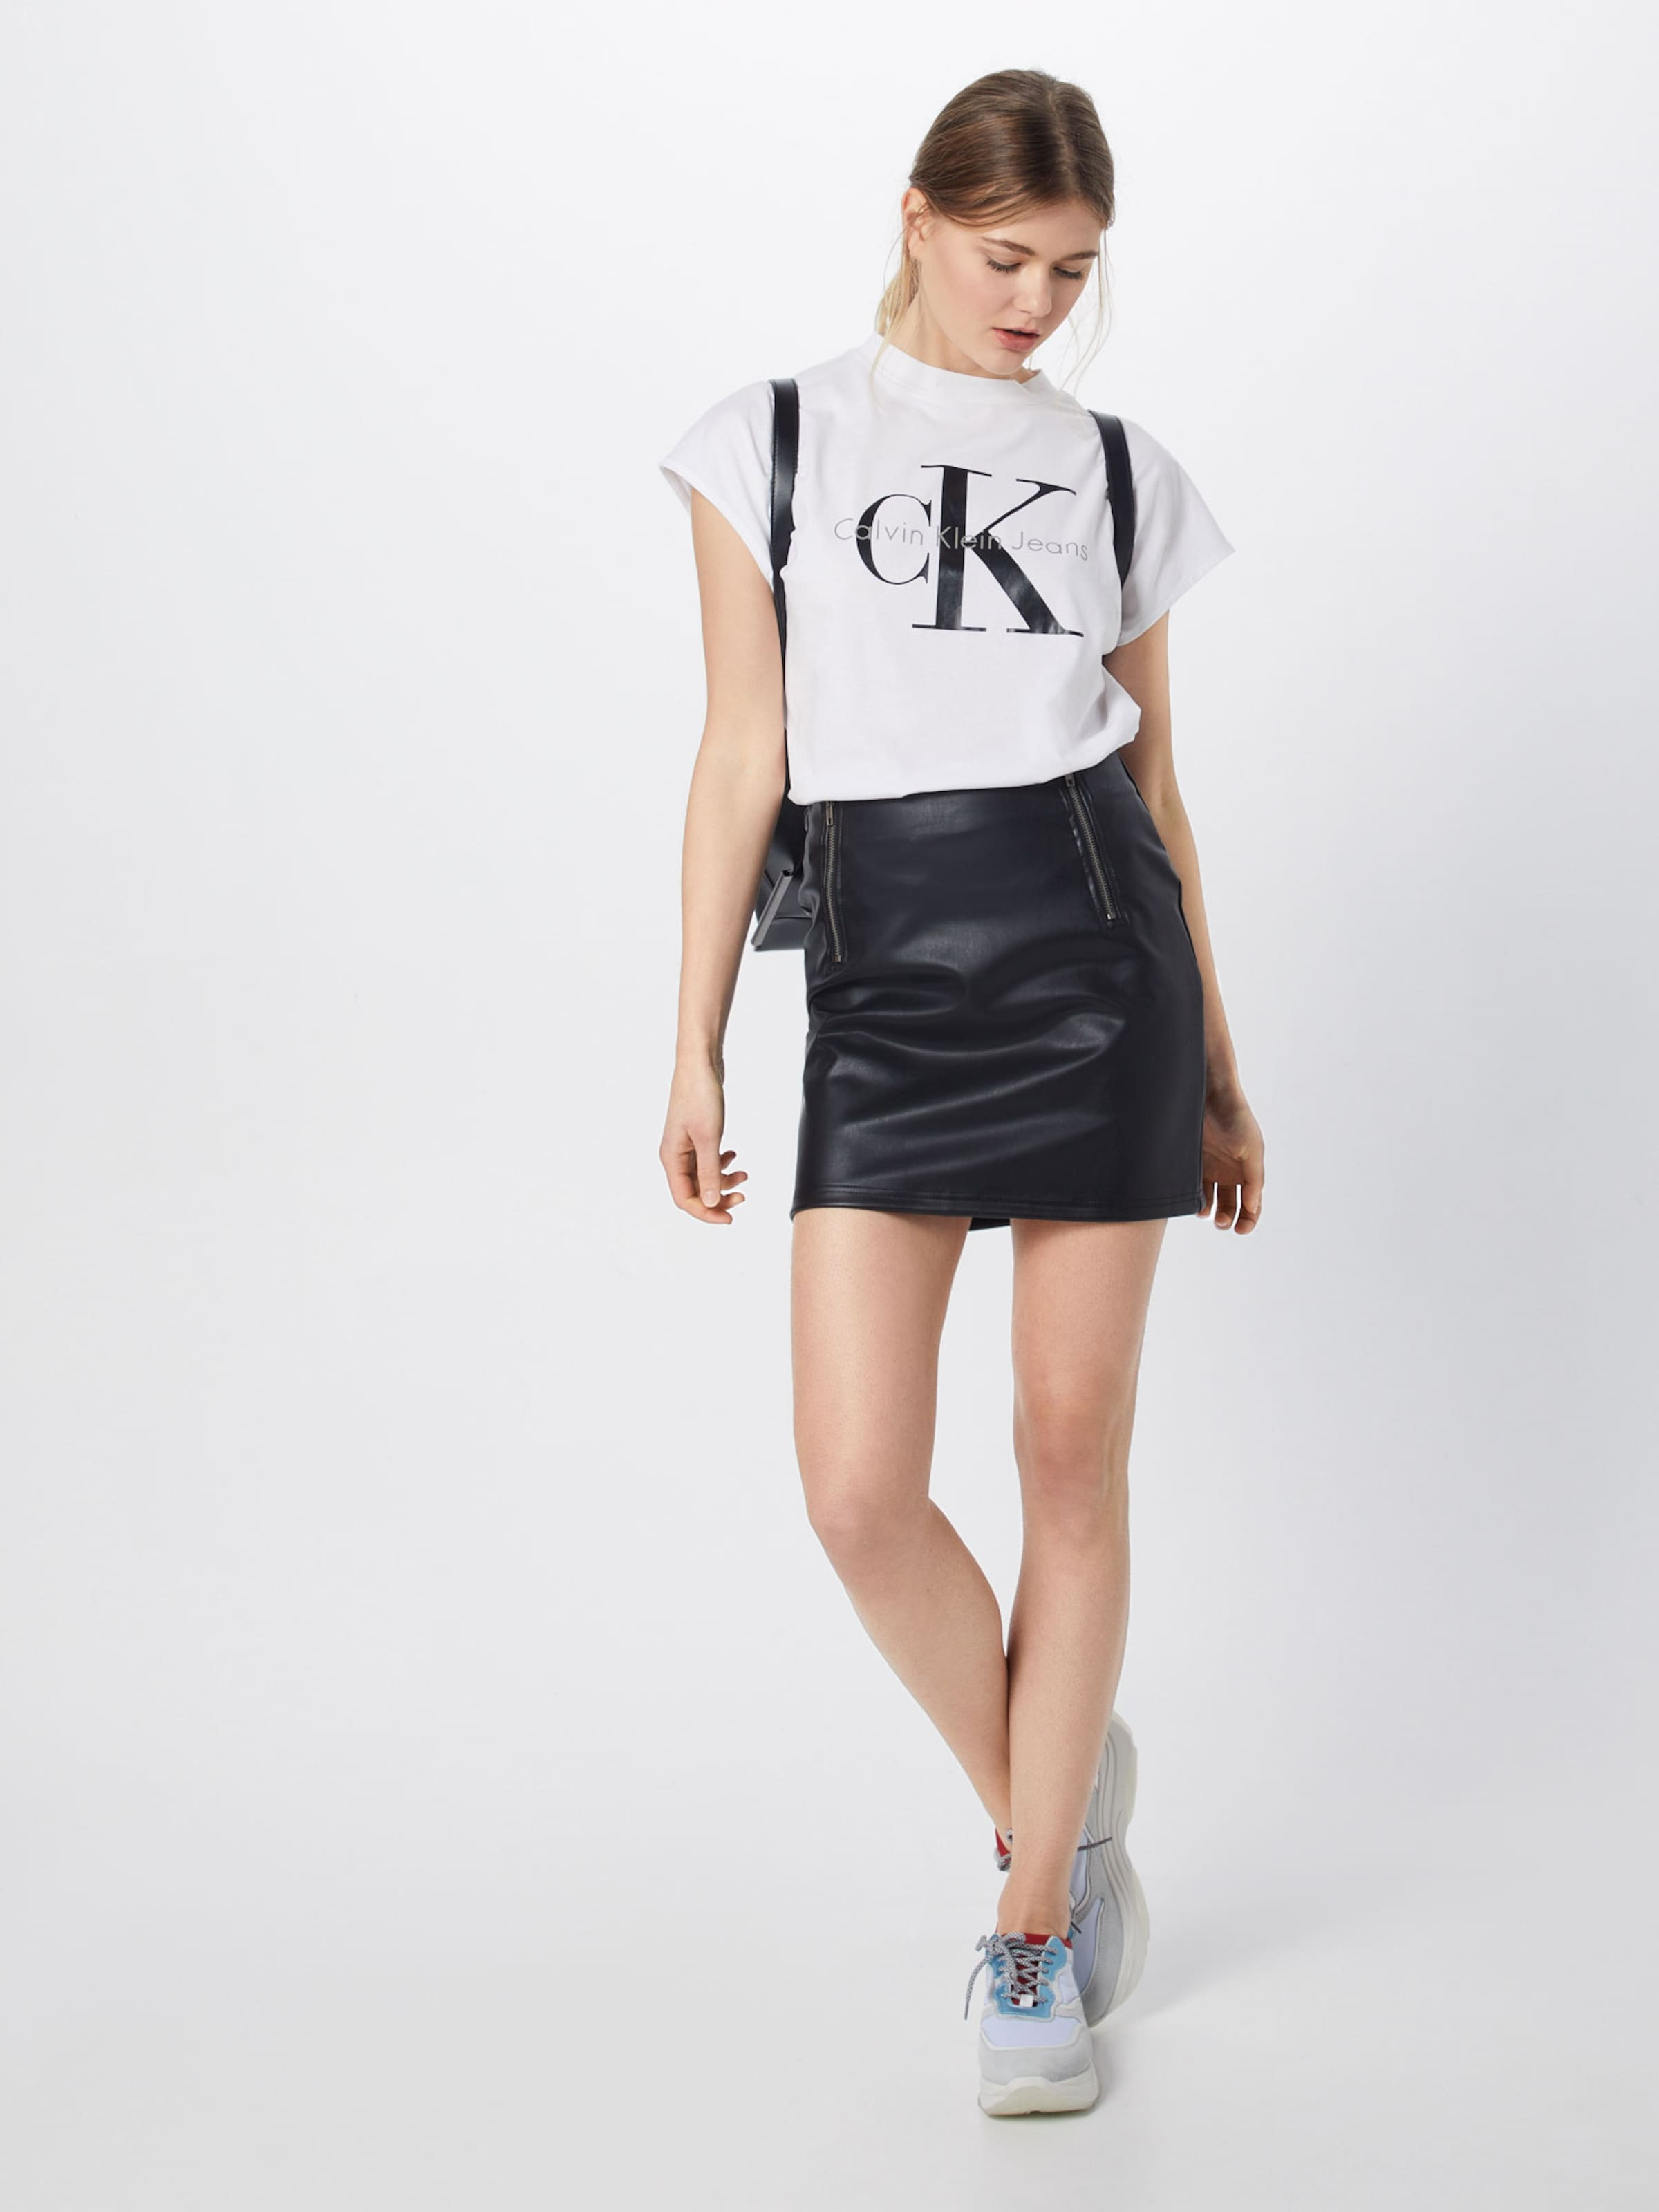 Short Noisy Schwarz Rock Skirt' In May 'nmfelixa srCxhQtd